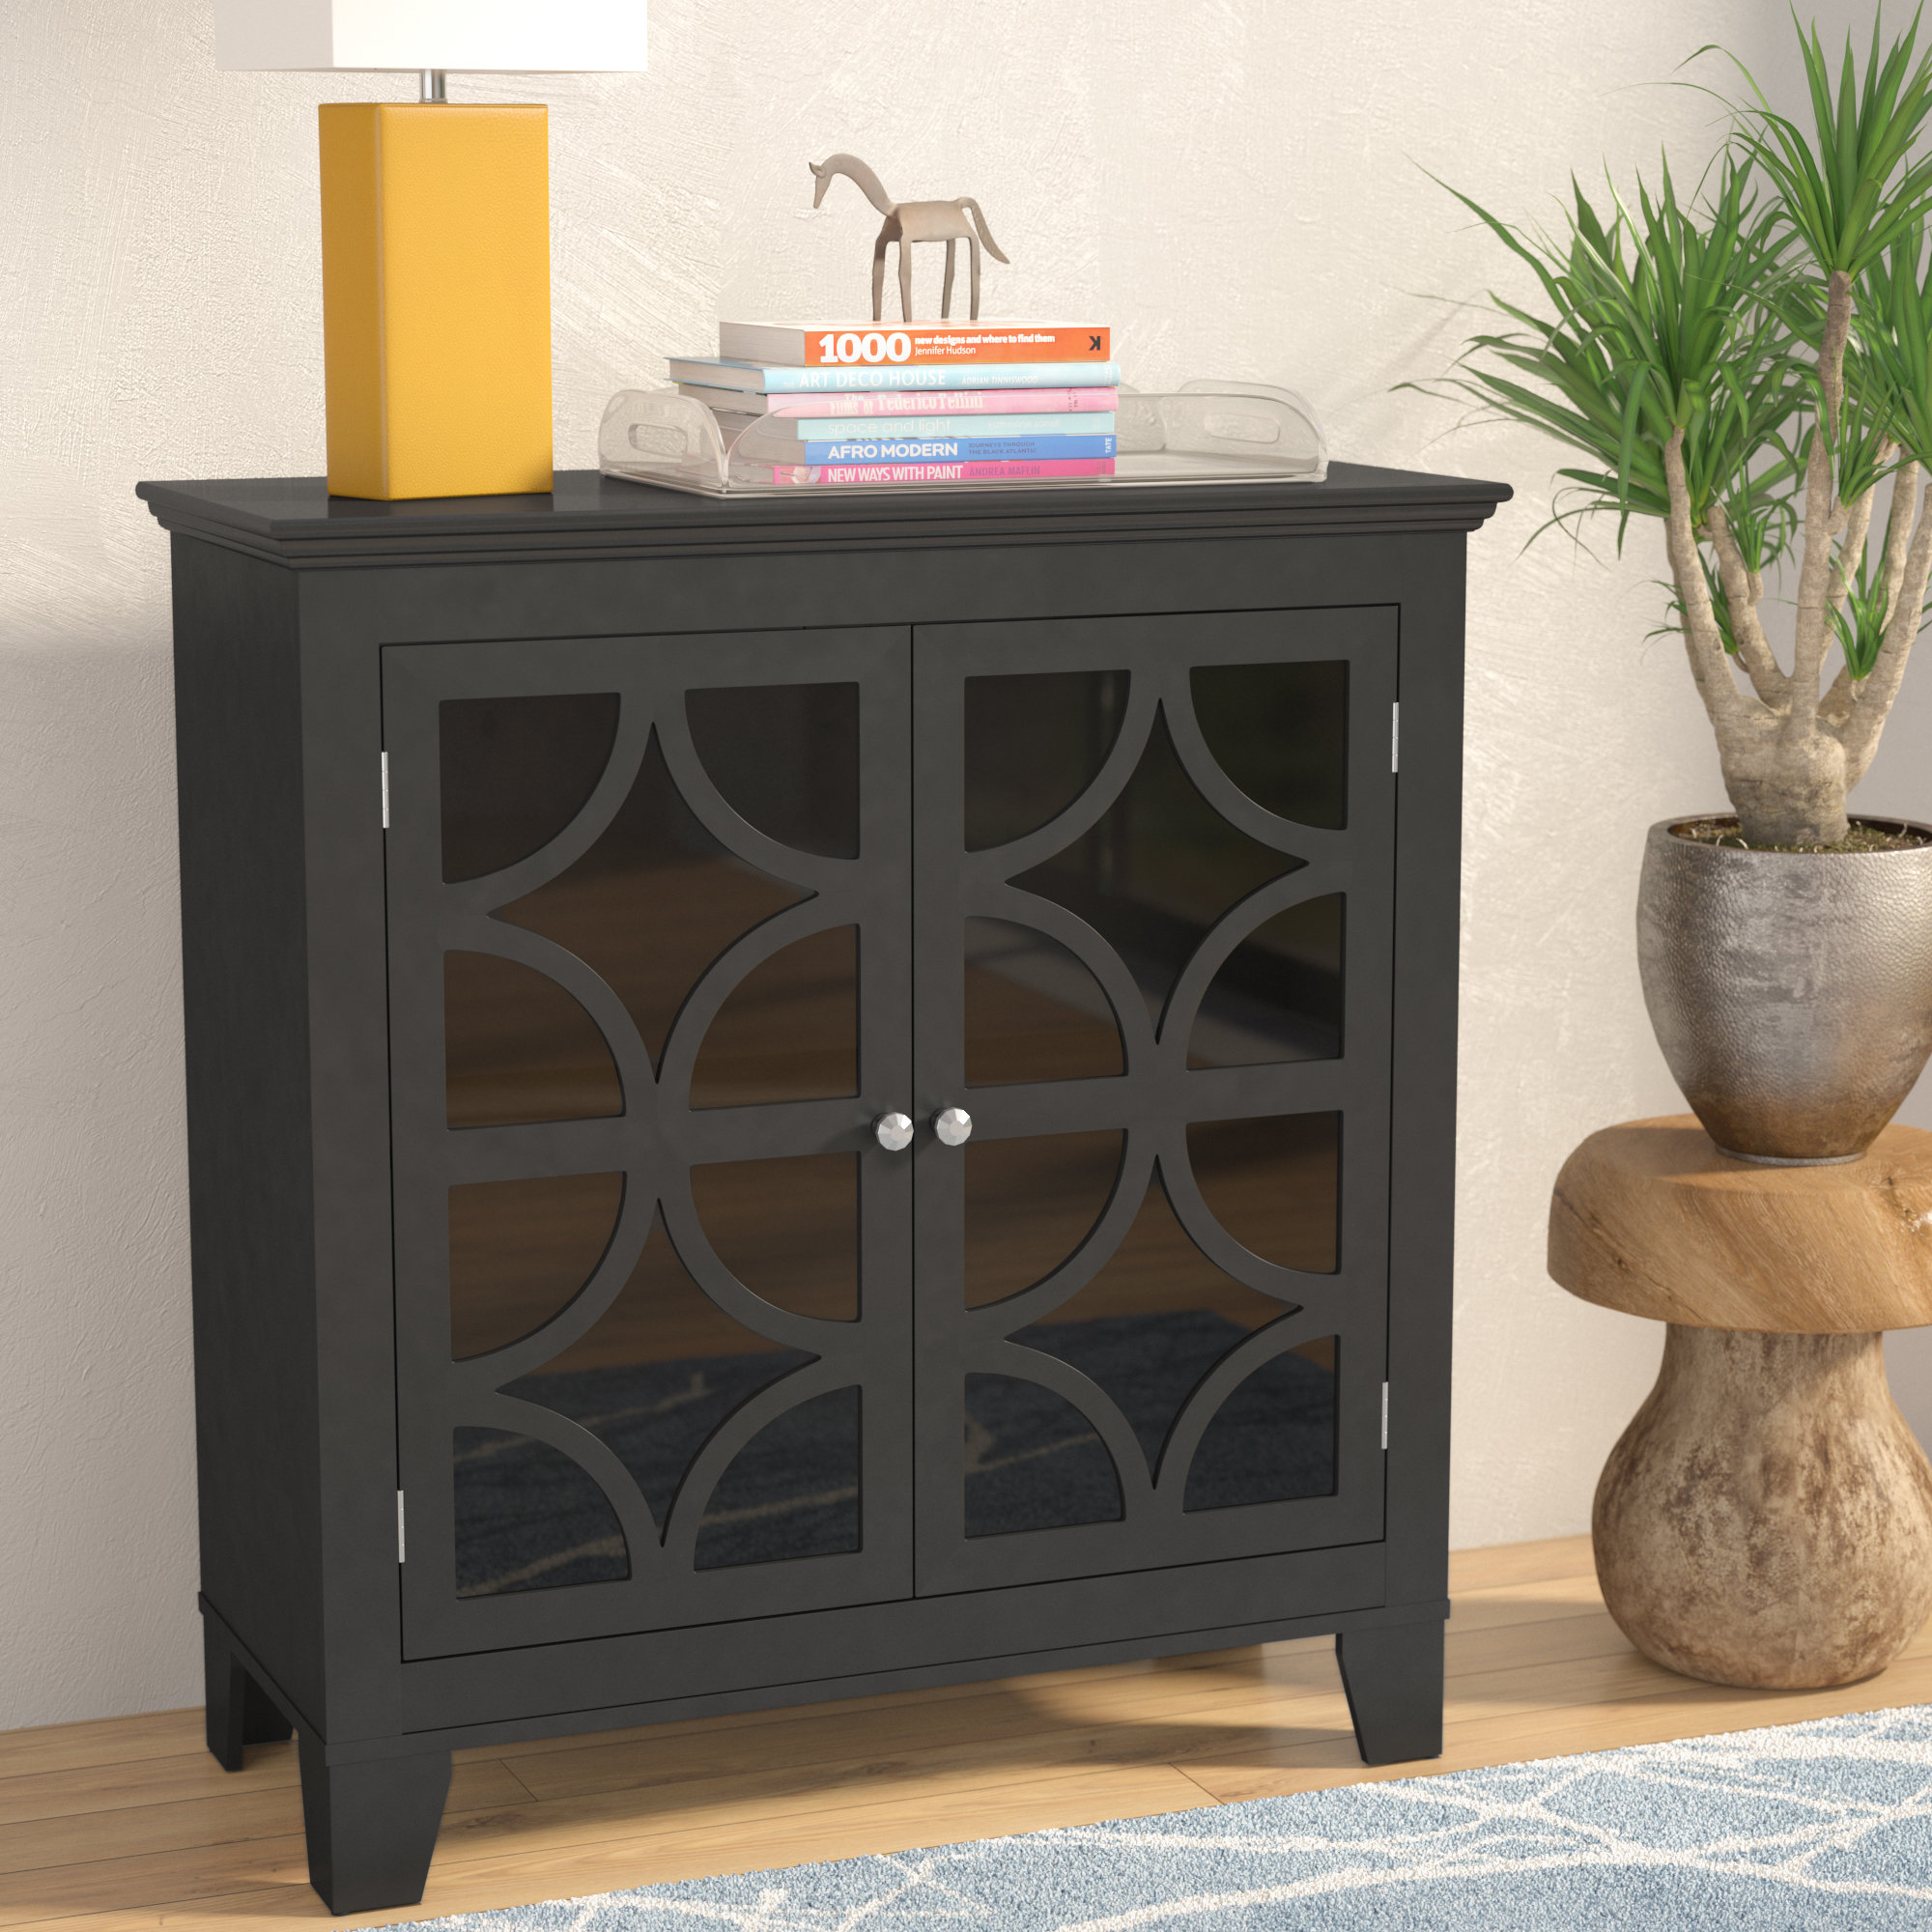 inch tall cabinet centeno door black accent table search results for country style furniture round coffee with drawers retro orange chair room essentials patio small end drawer